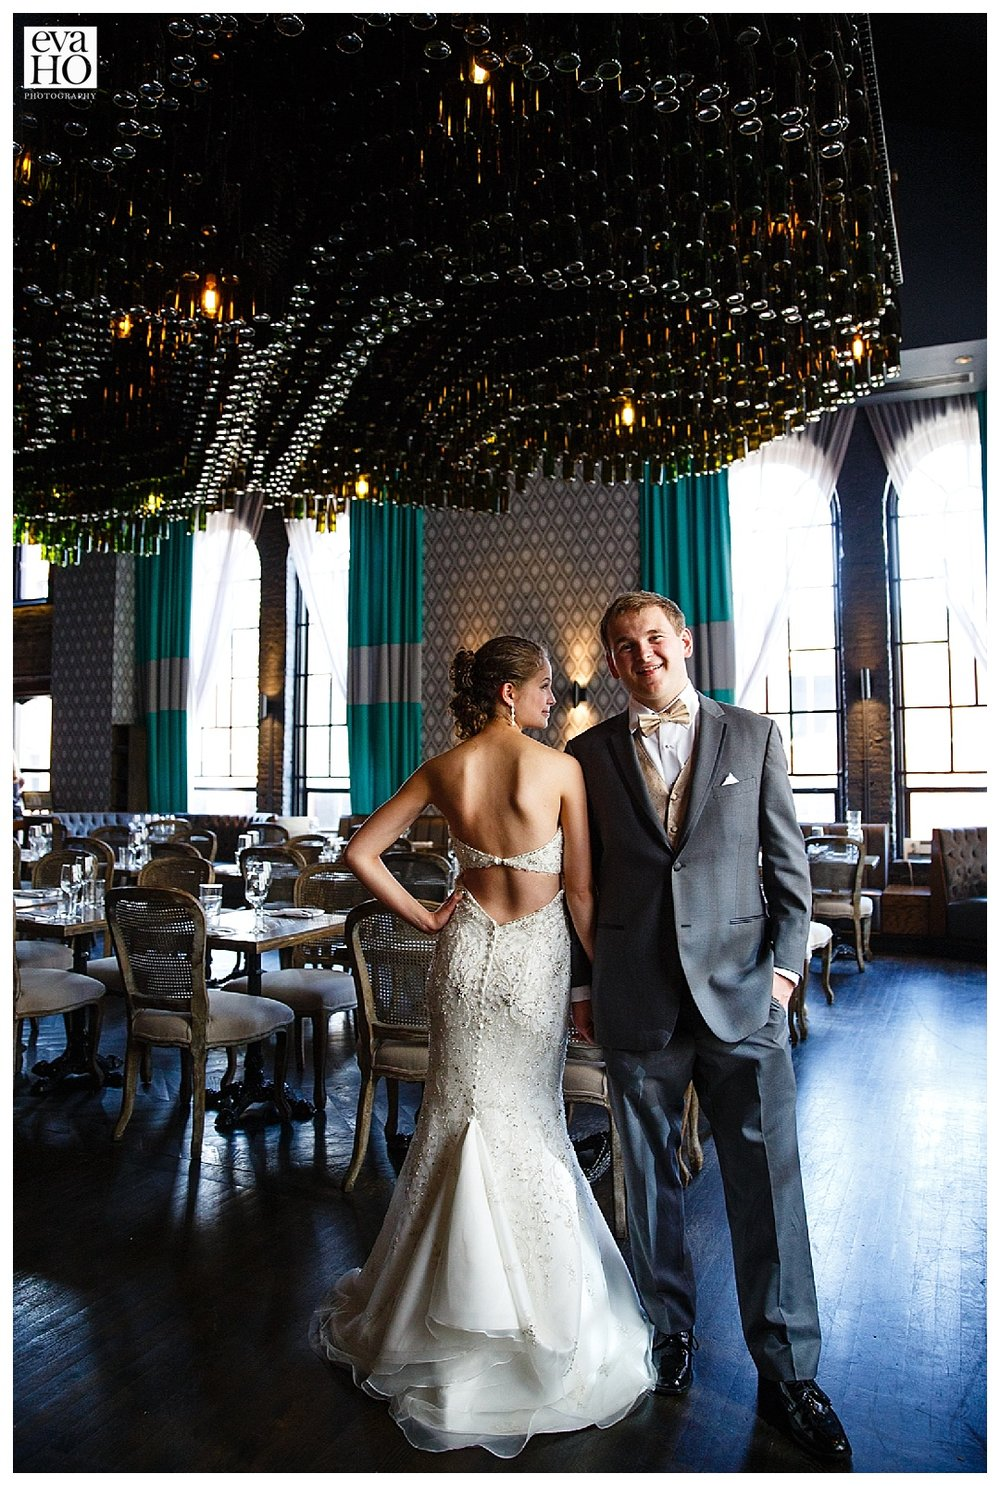 The newlywed at The Boarding House Chicago.